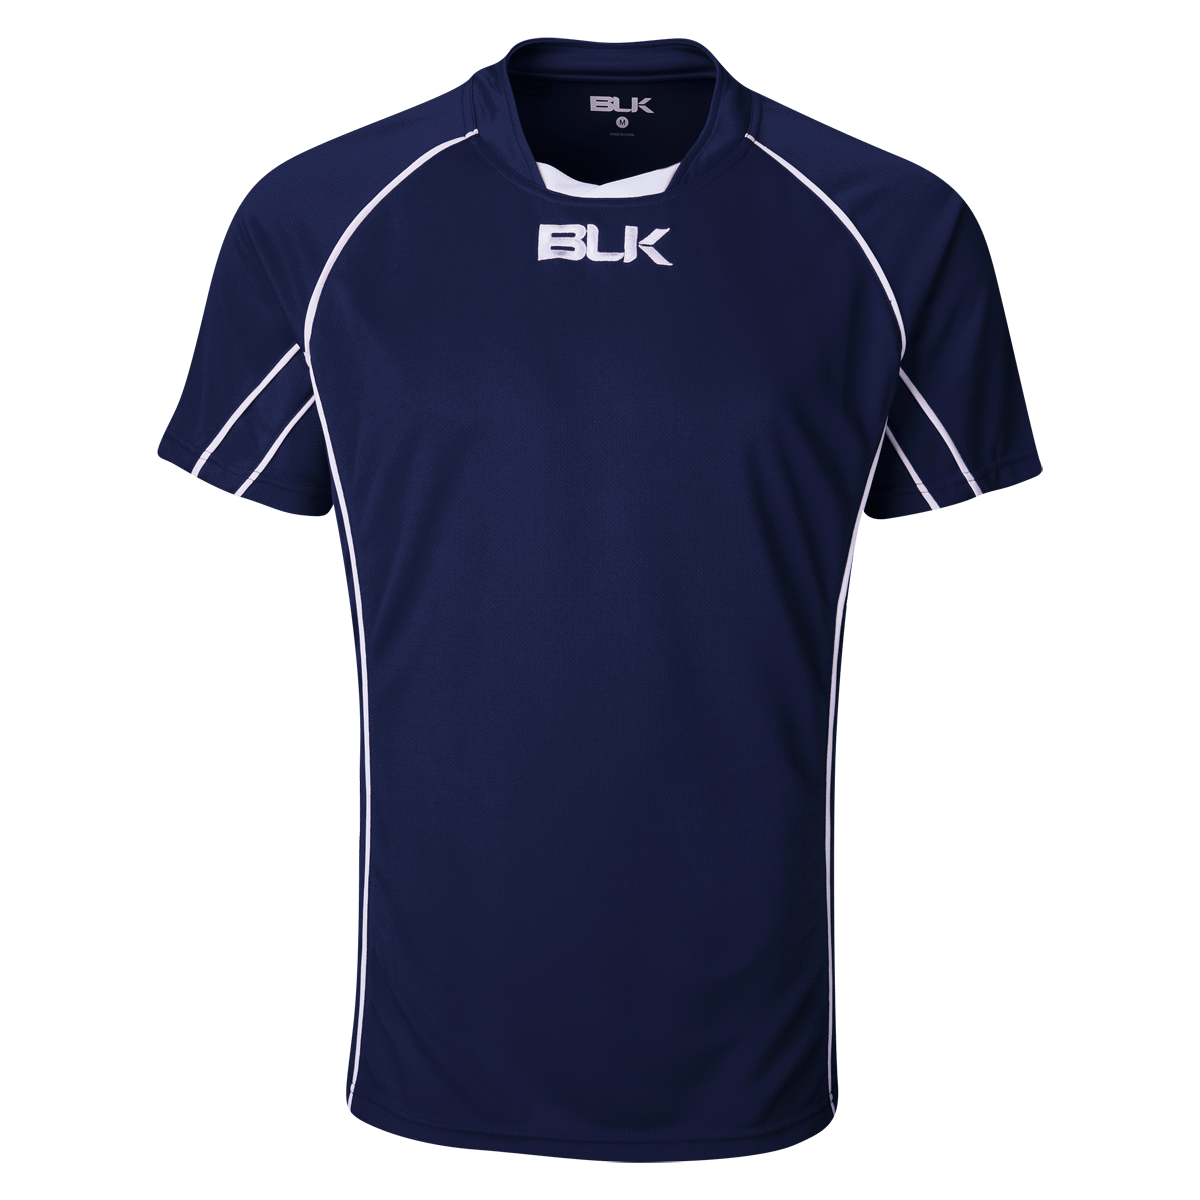 BLK Navy Youth Icon Rugby Jersey